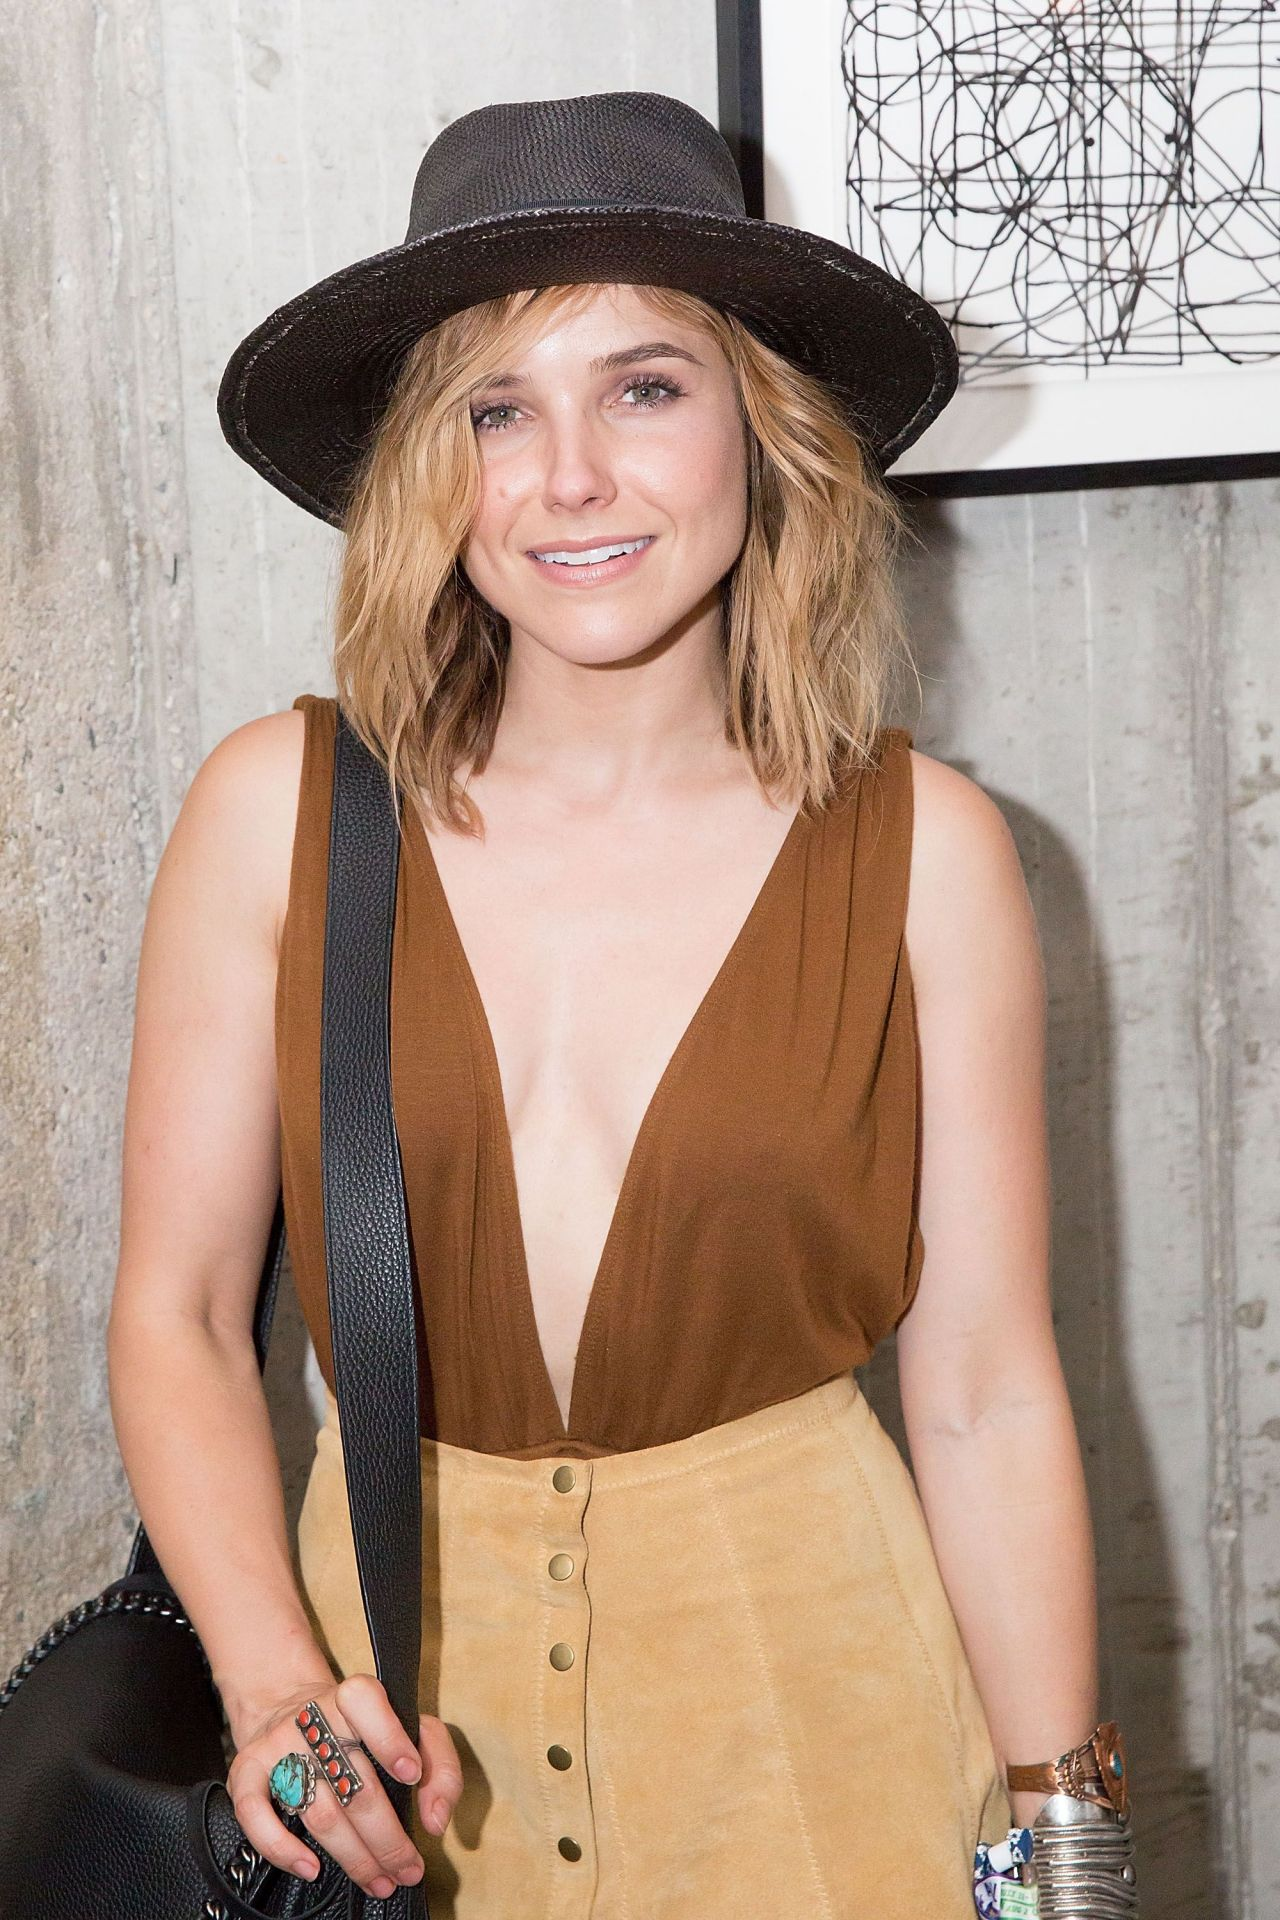 Sophia bush soho house chicago bacardi festival Sophia house